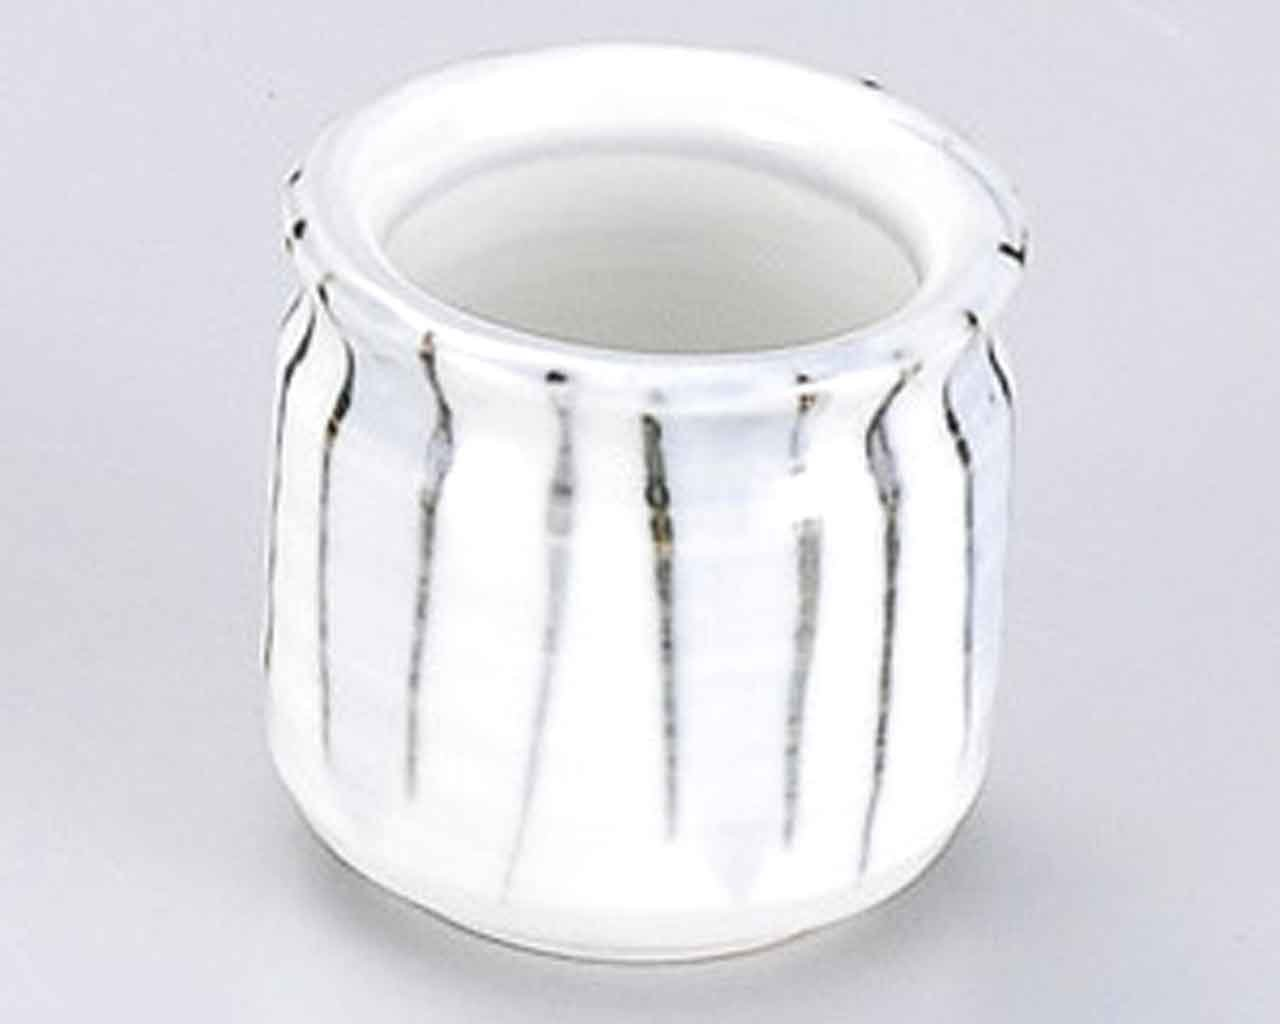 Kesho Tokusa 2.1inch Set of 5 Toothpick holders White porcelain Made in Japan by Watou.asia